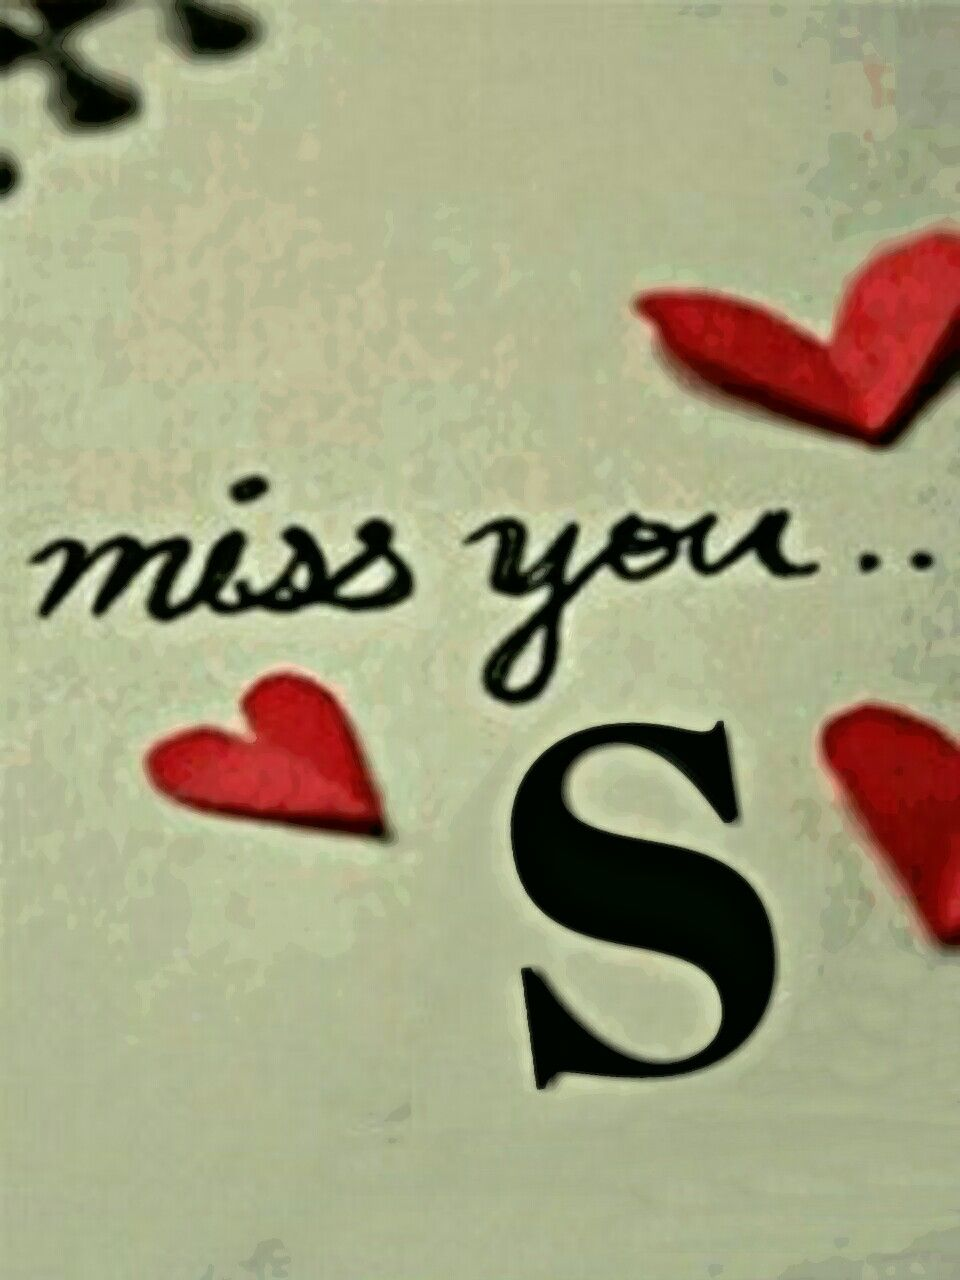 Pin By N Shaikh On N S S Love Images Beautiful Love Images S Letters Love